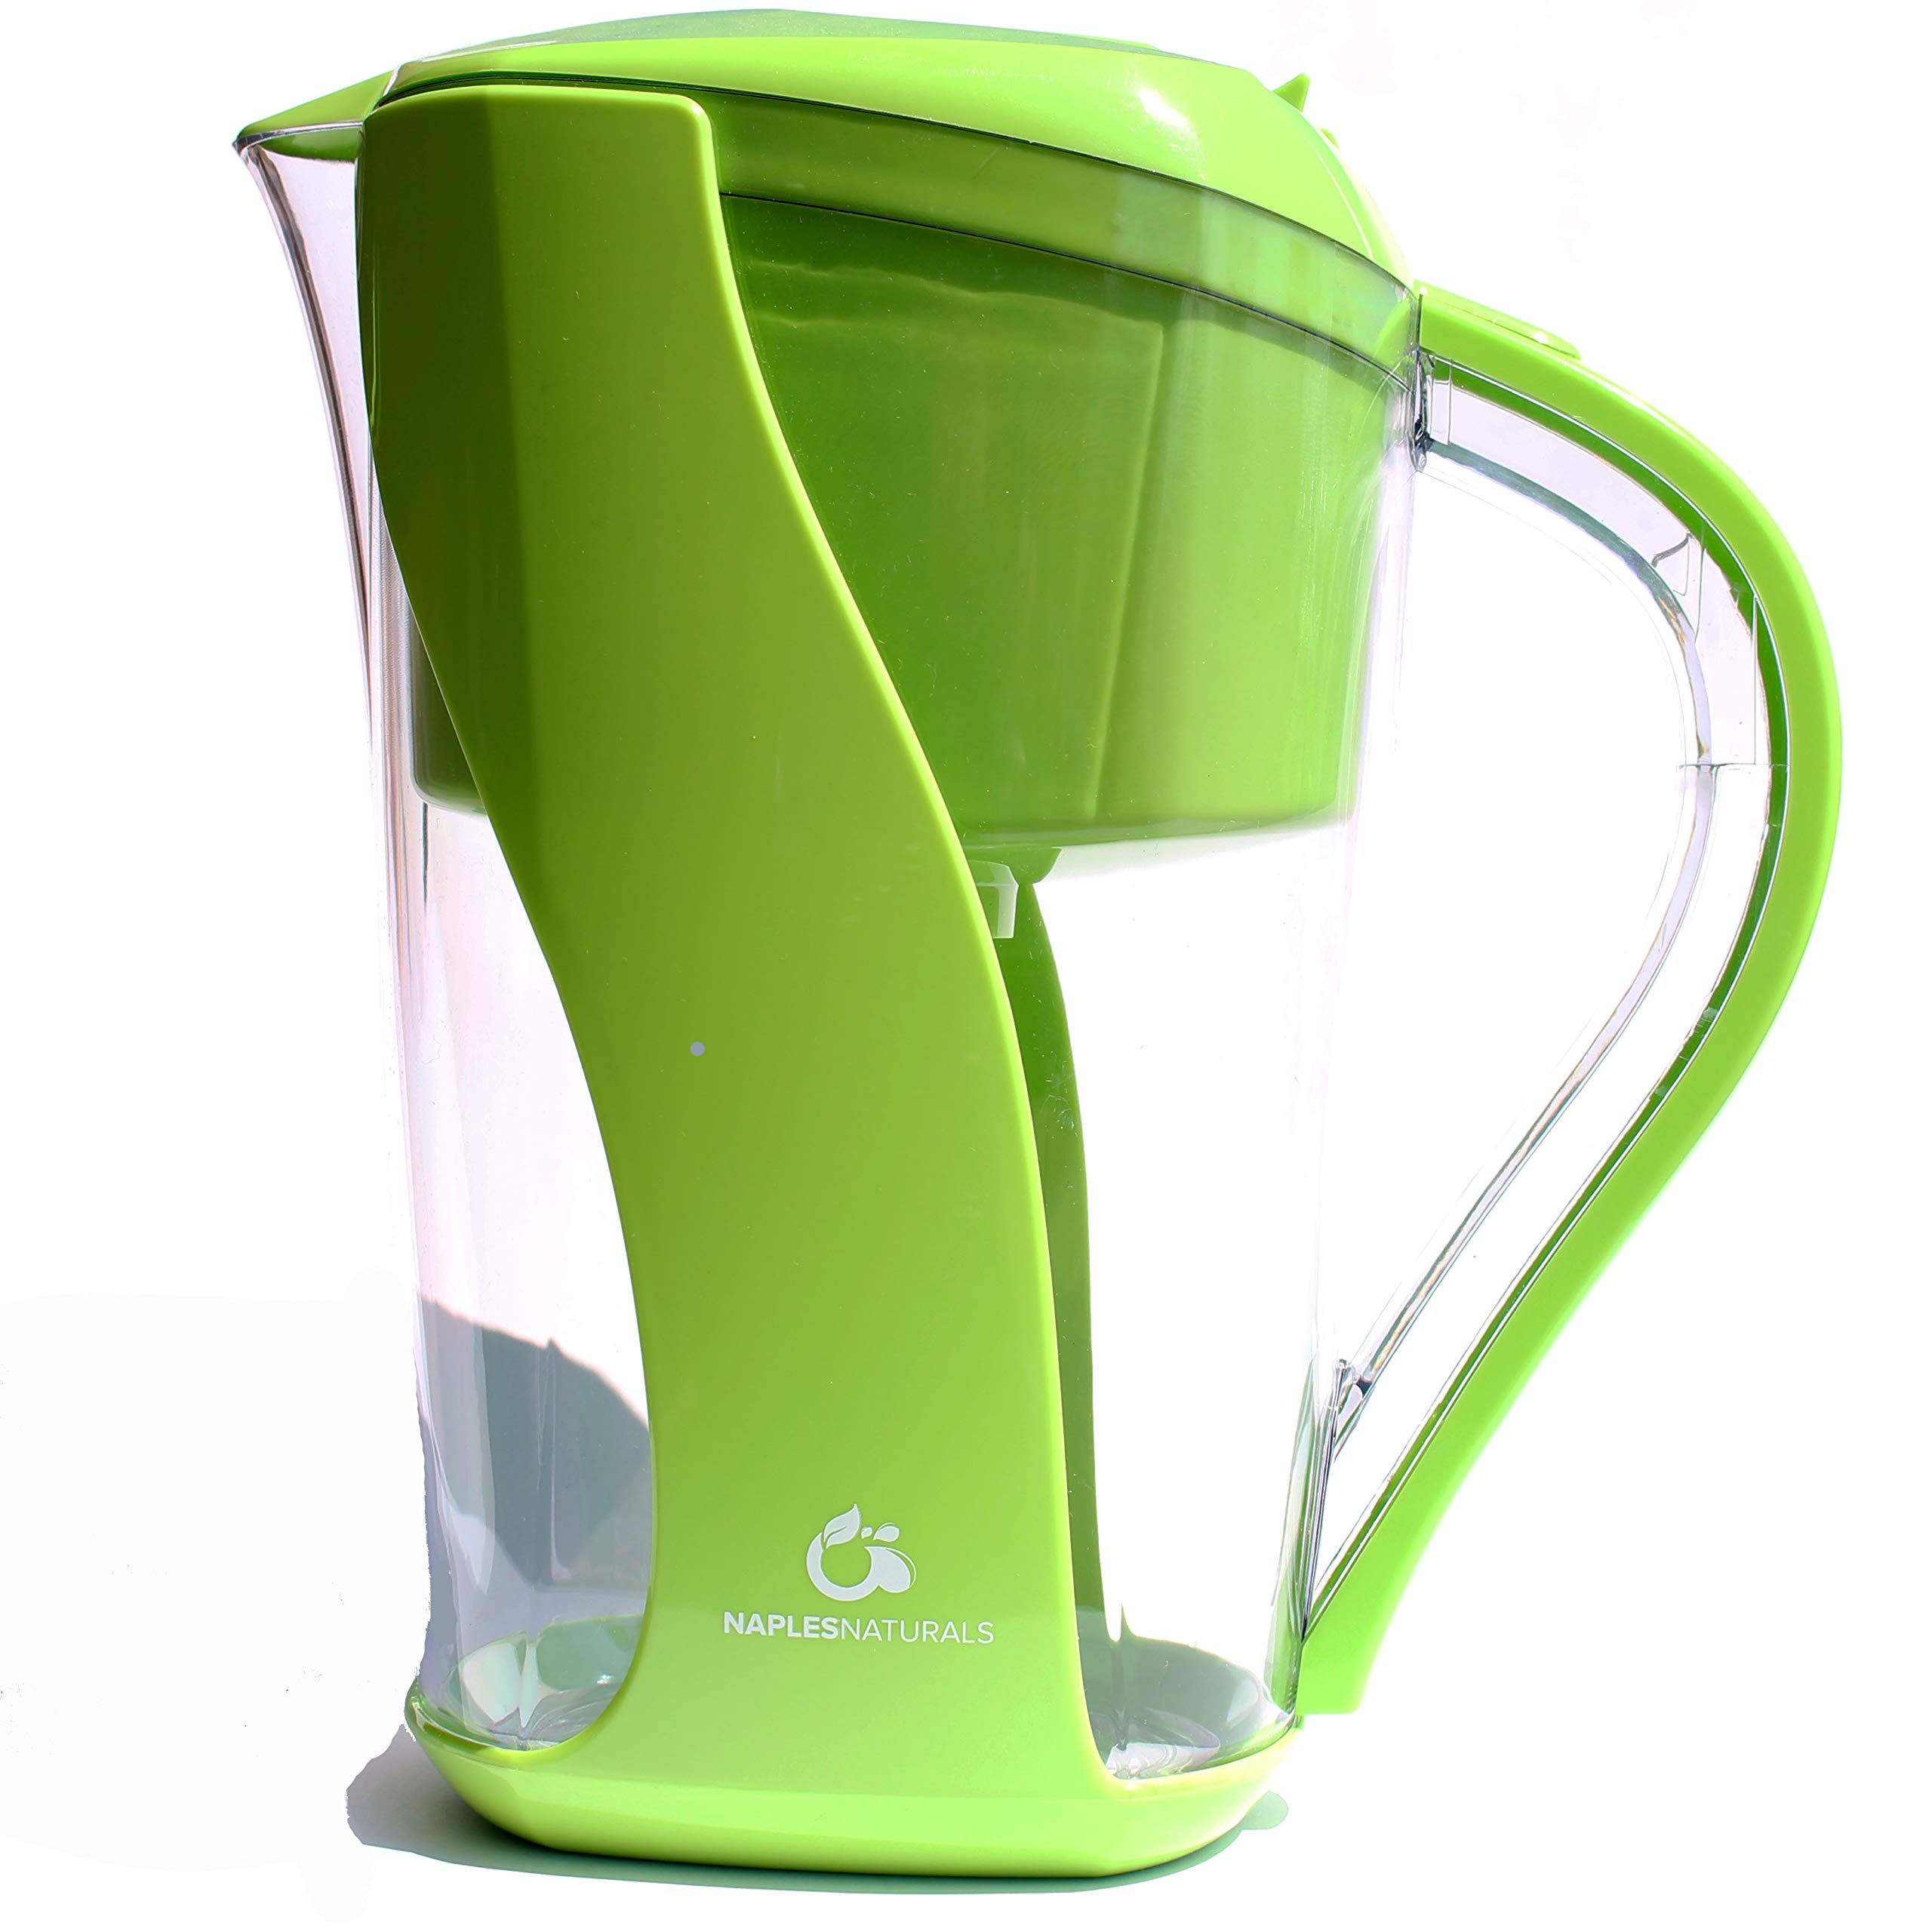 Naples Naturals 109X1 Alkaline Water Filter Pitcher - Removes Chlorine and Contaminants Plus Increases pH (Green), 109 Green, Model:AOK109-GRN-01